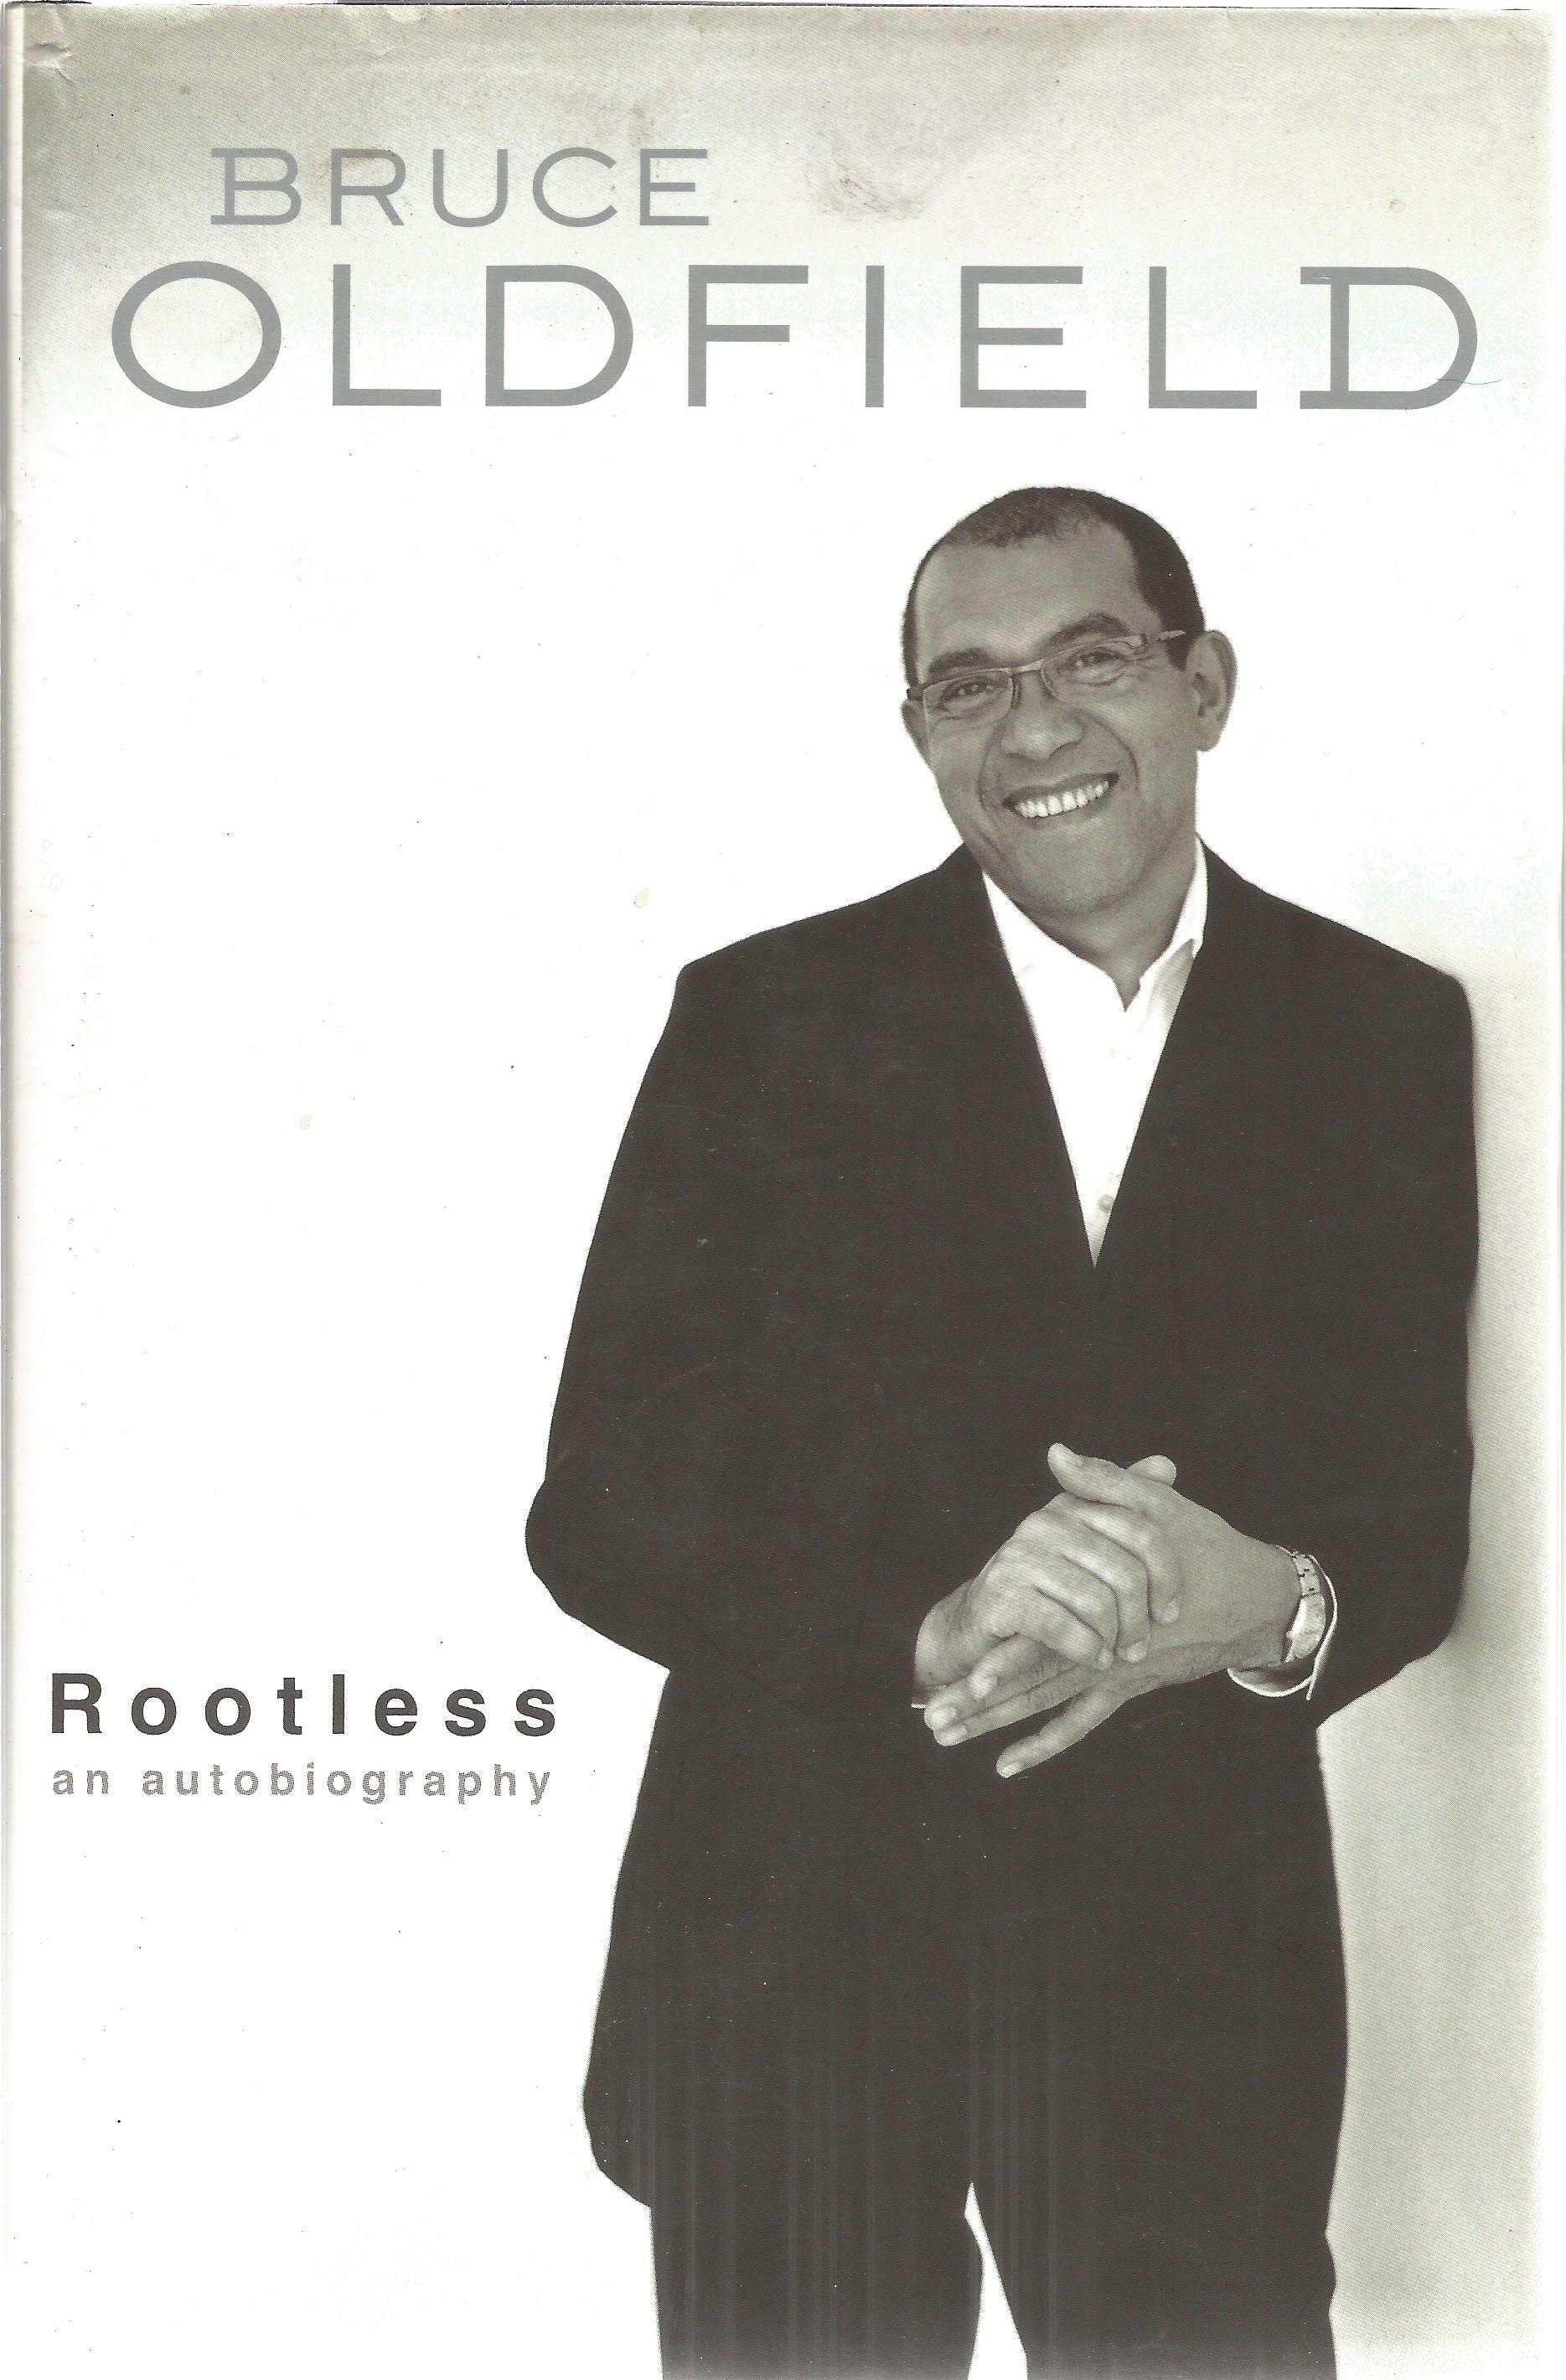 Bruce Oldfield signed autobiography Rootless. This hardback book has a dedicated signature